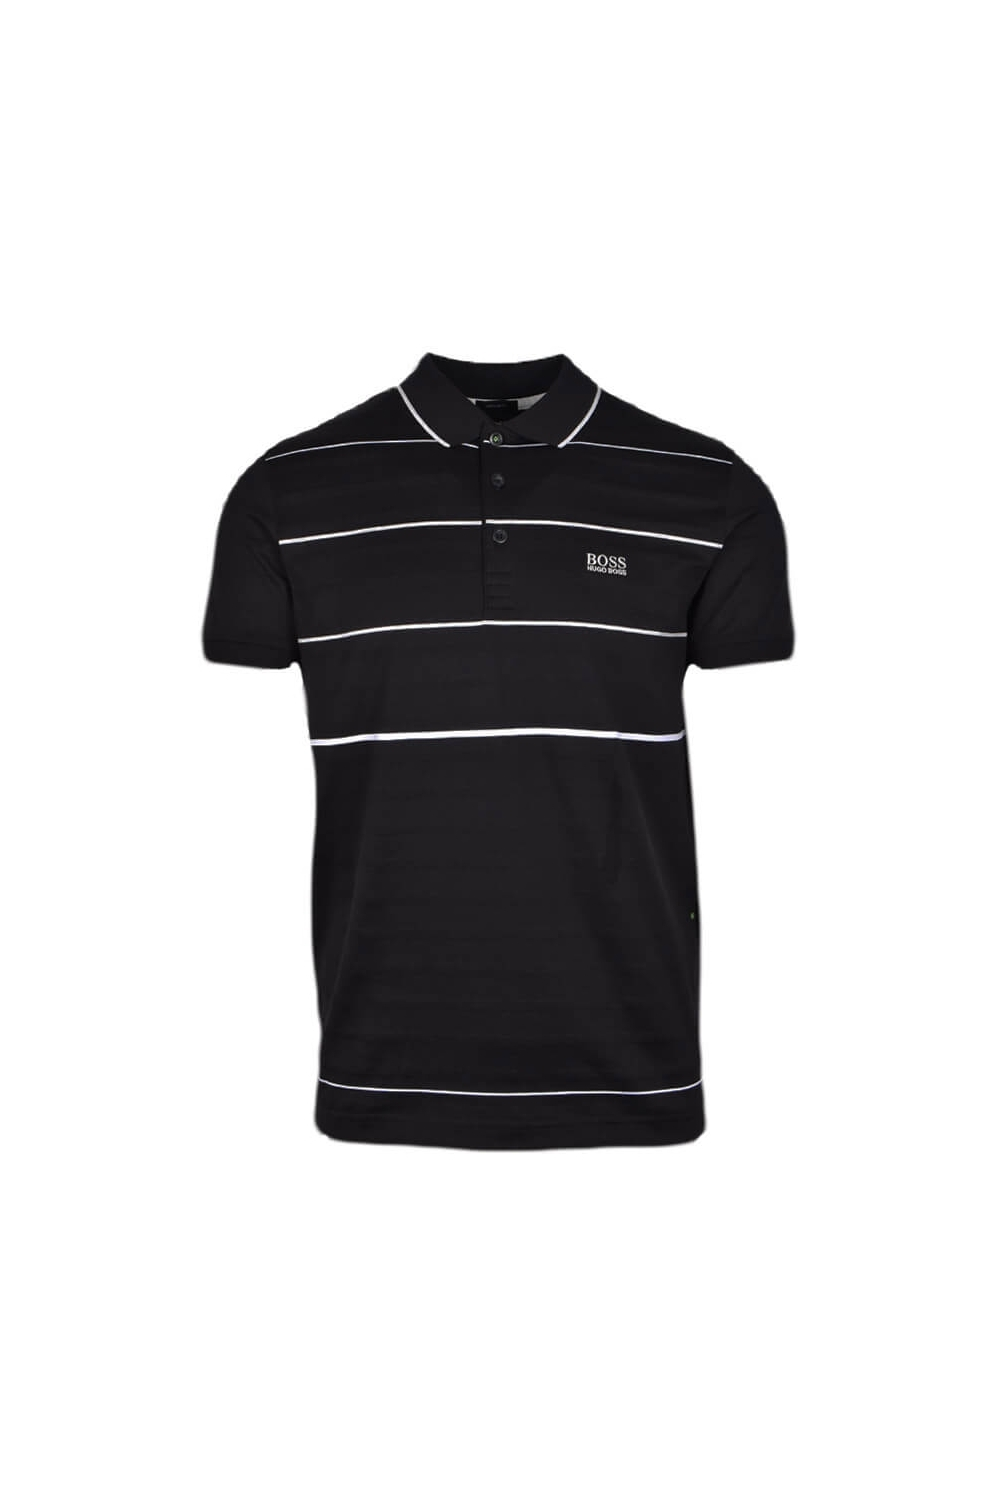 35506c44d Boss Athleisure Paddy 5 Polo Black 50404269 | Michael Stewart Menswear